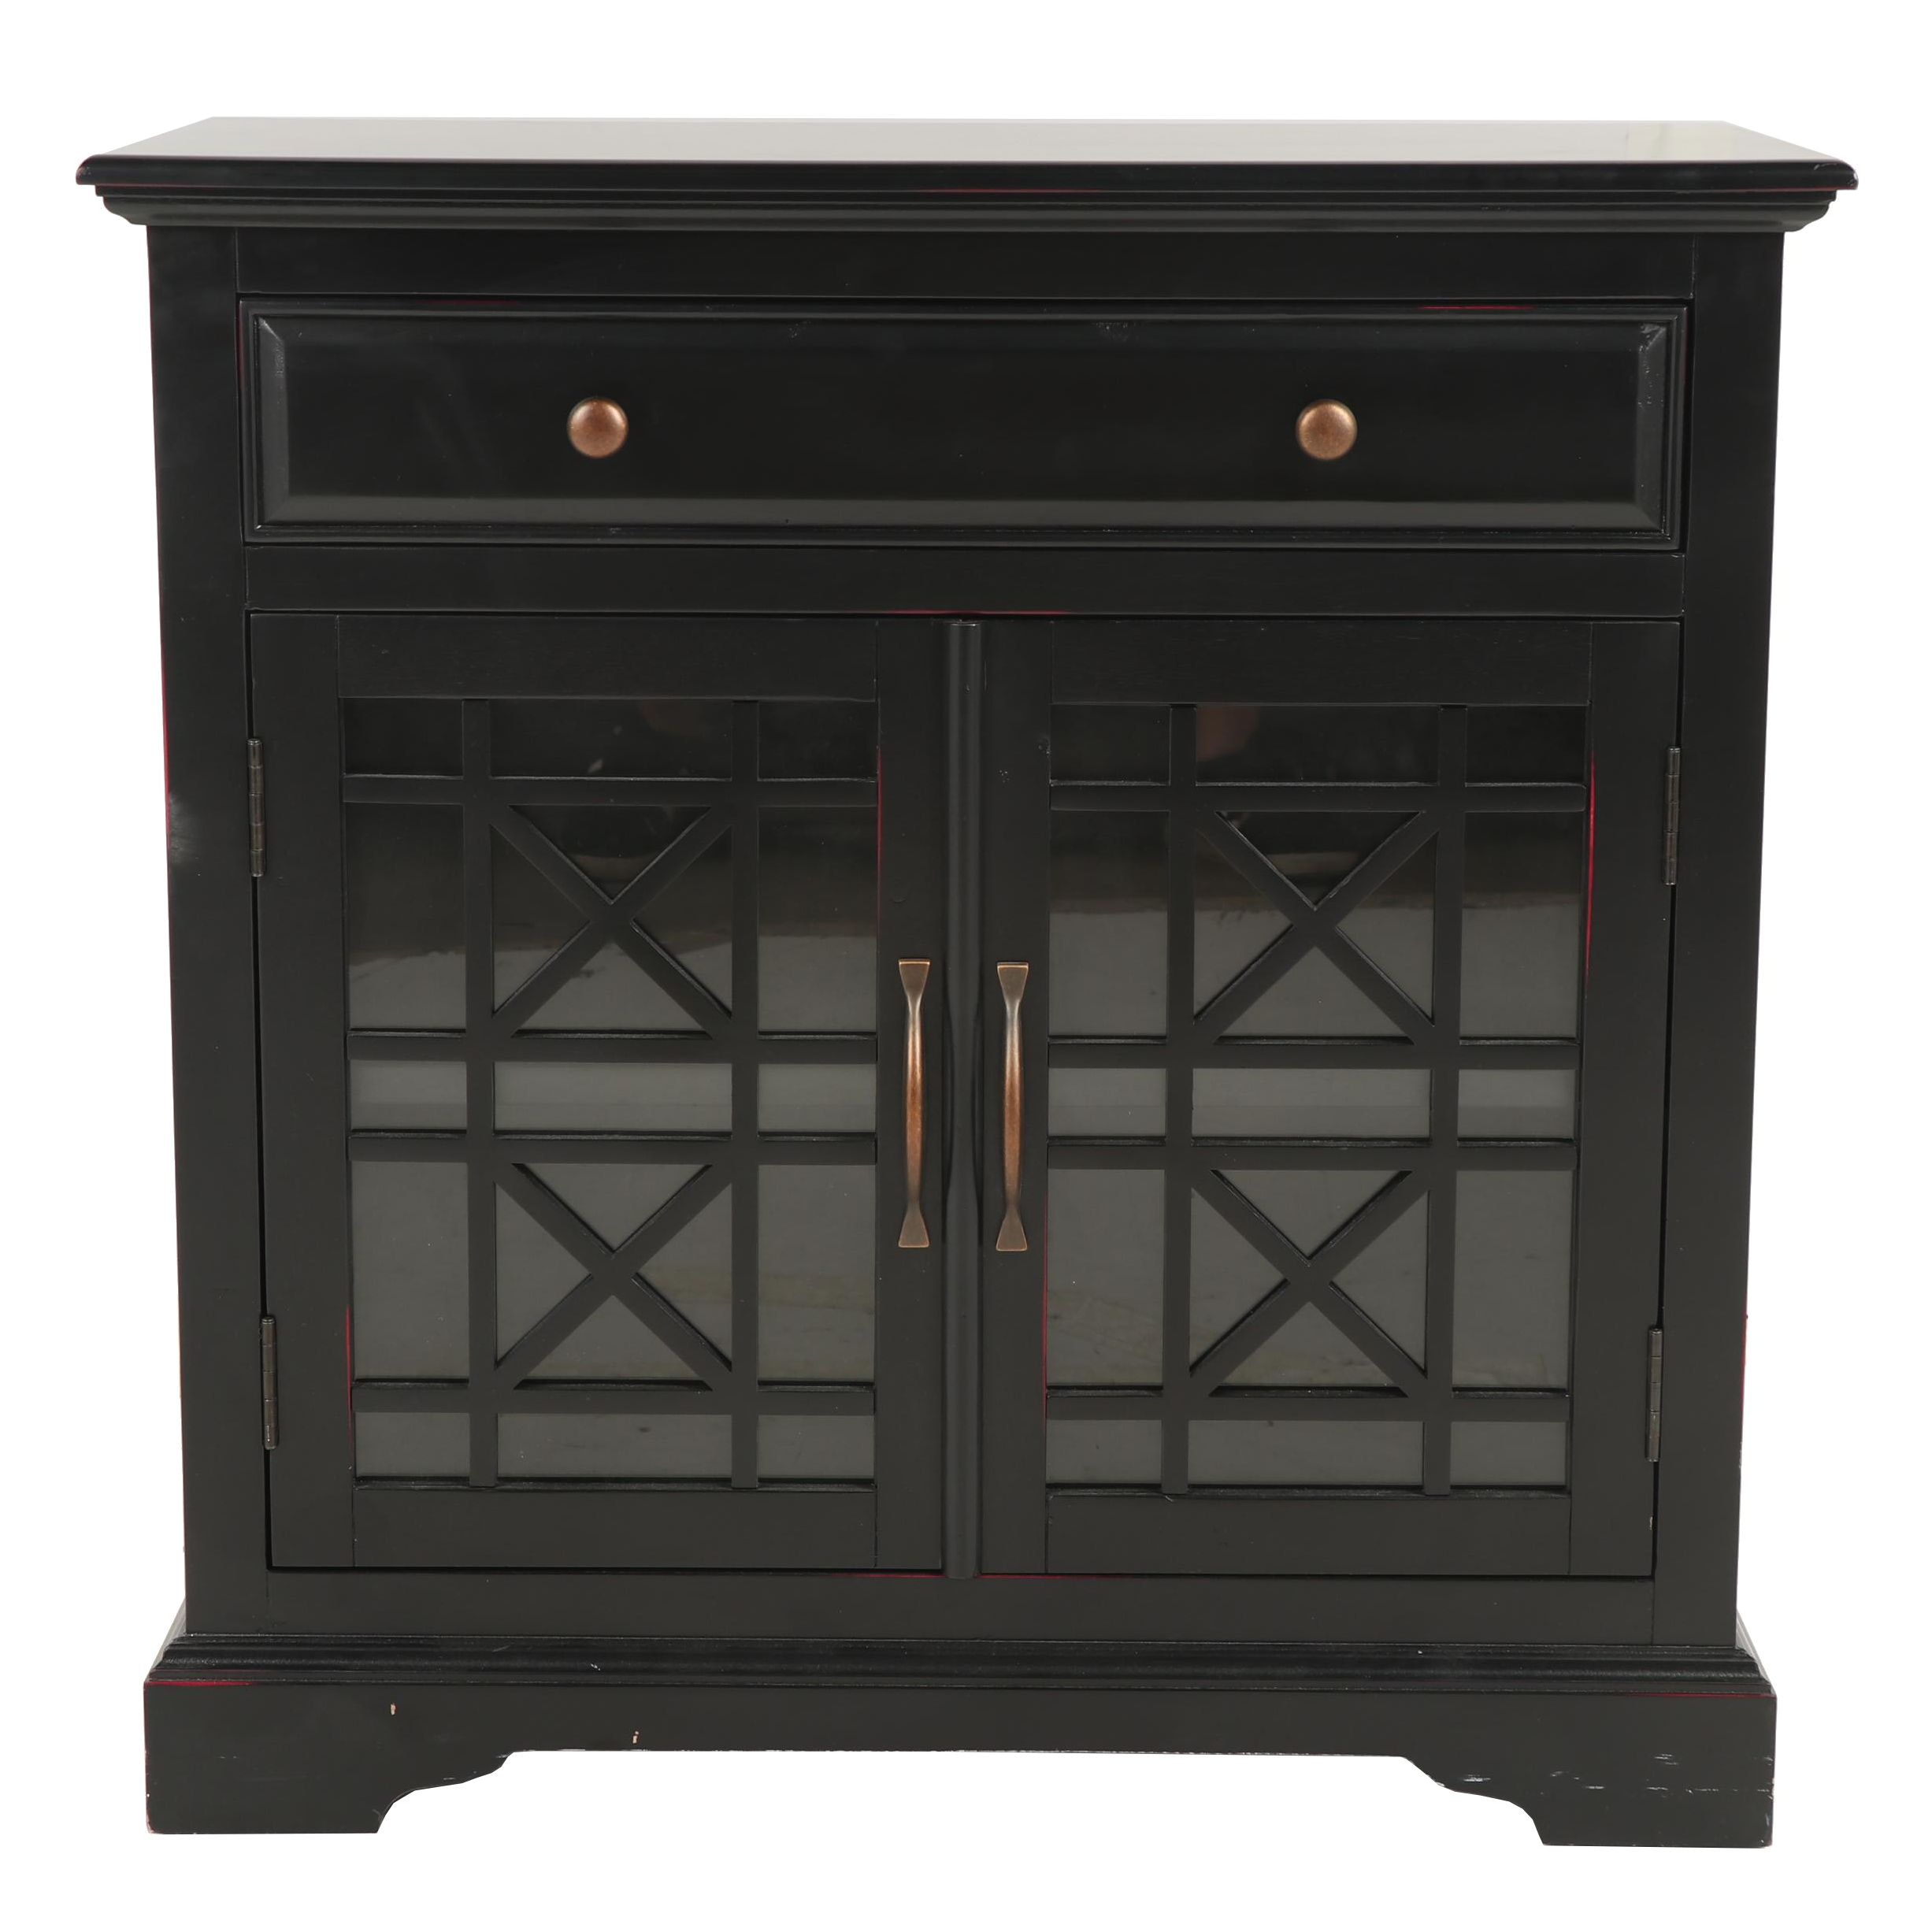 Contemporary Single Drawer Black-Painted Wooden Cabinet